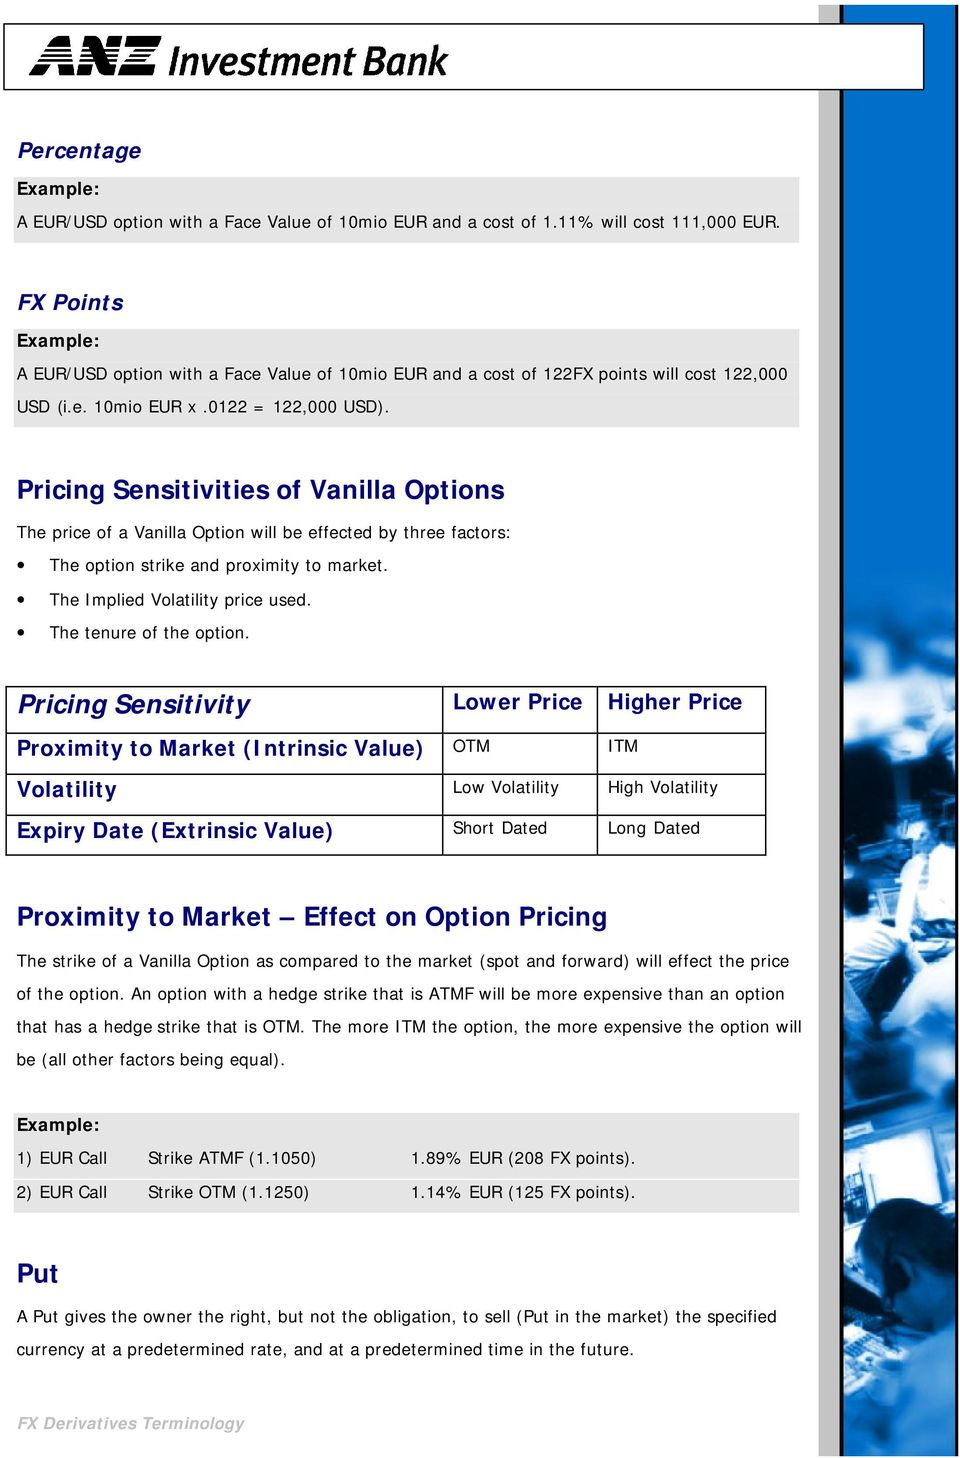 Pricing Sensitivities of Vanilla Options The price of a Vanilla Option will be effected by three factors: The option strike and proximity to market. The Implied Volatility price used.